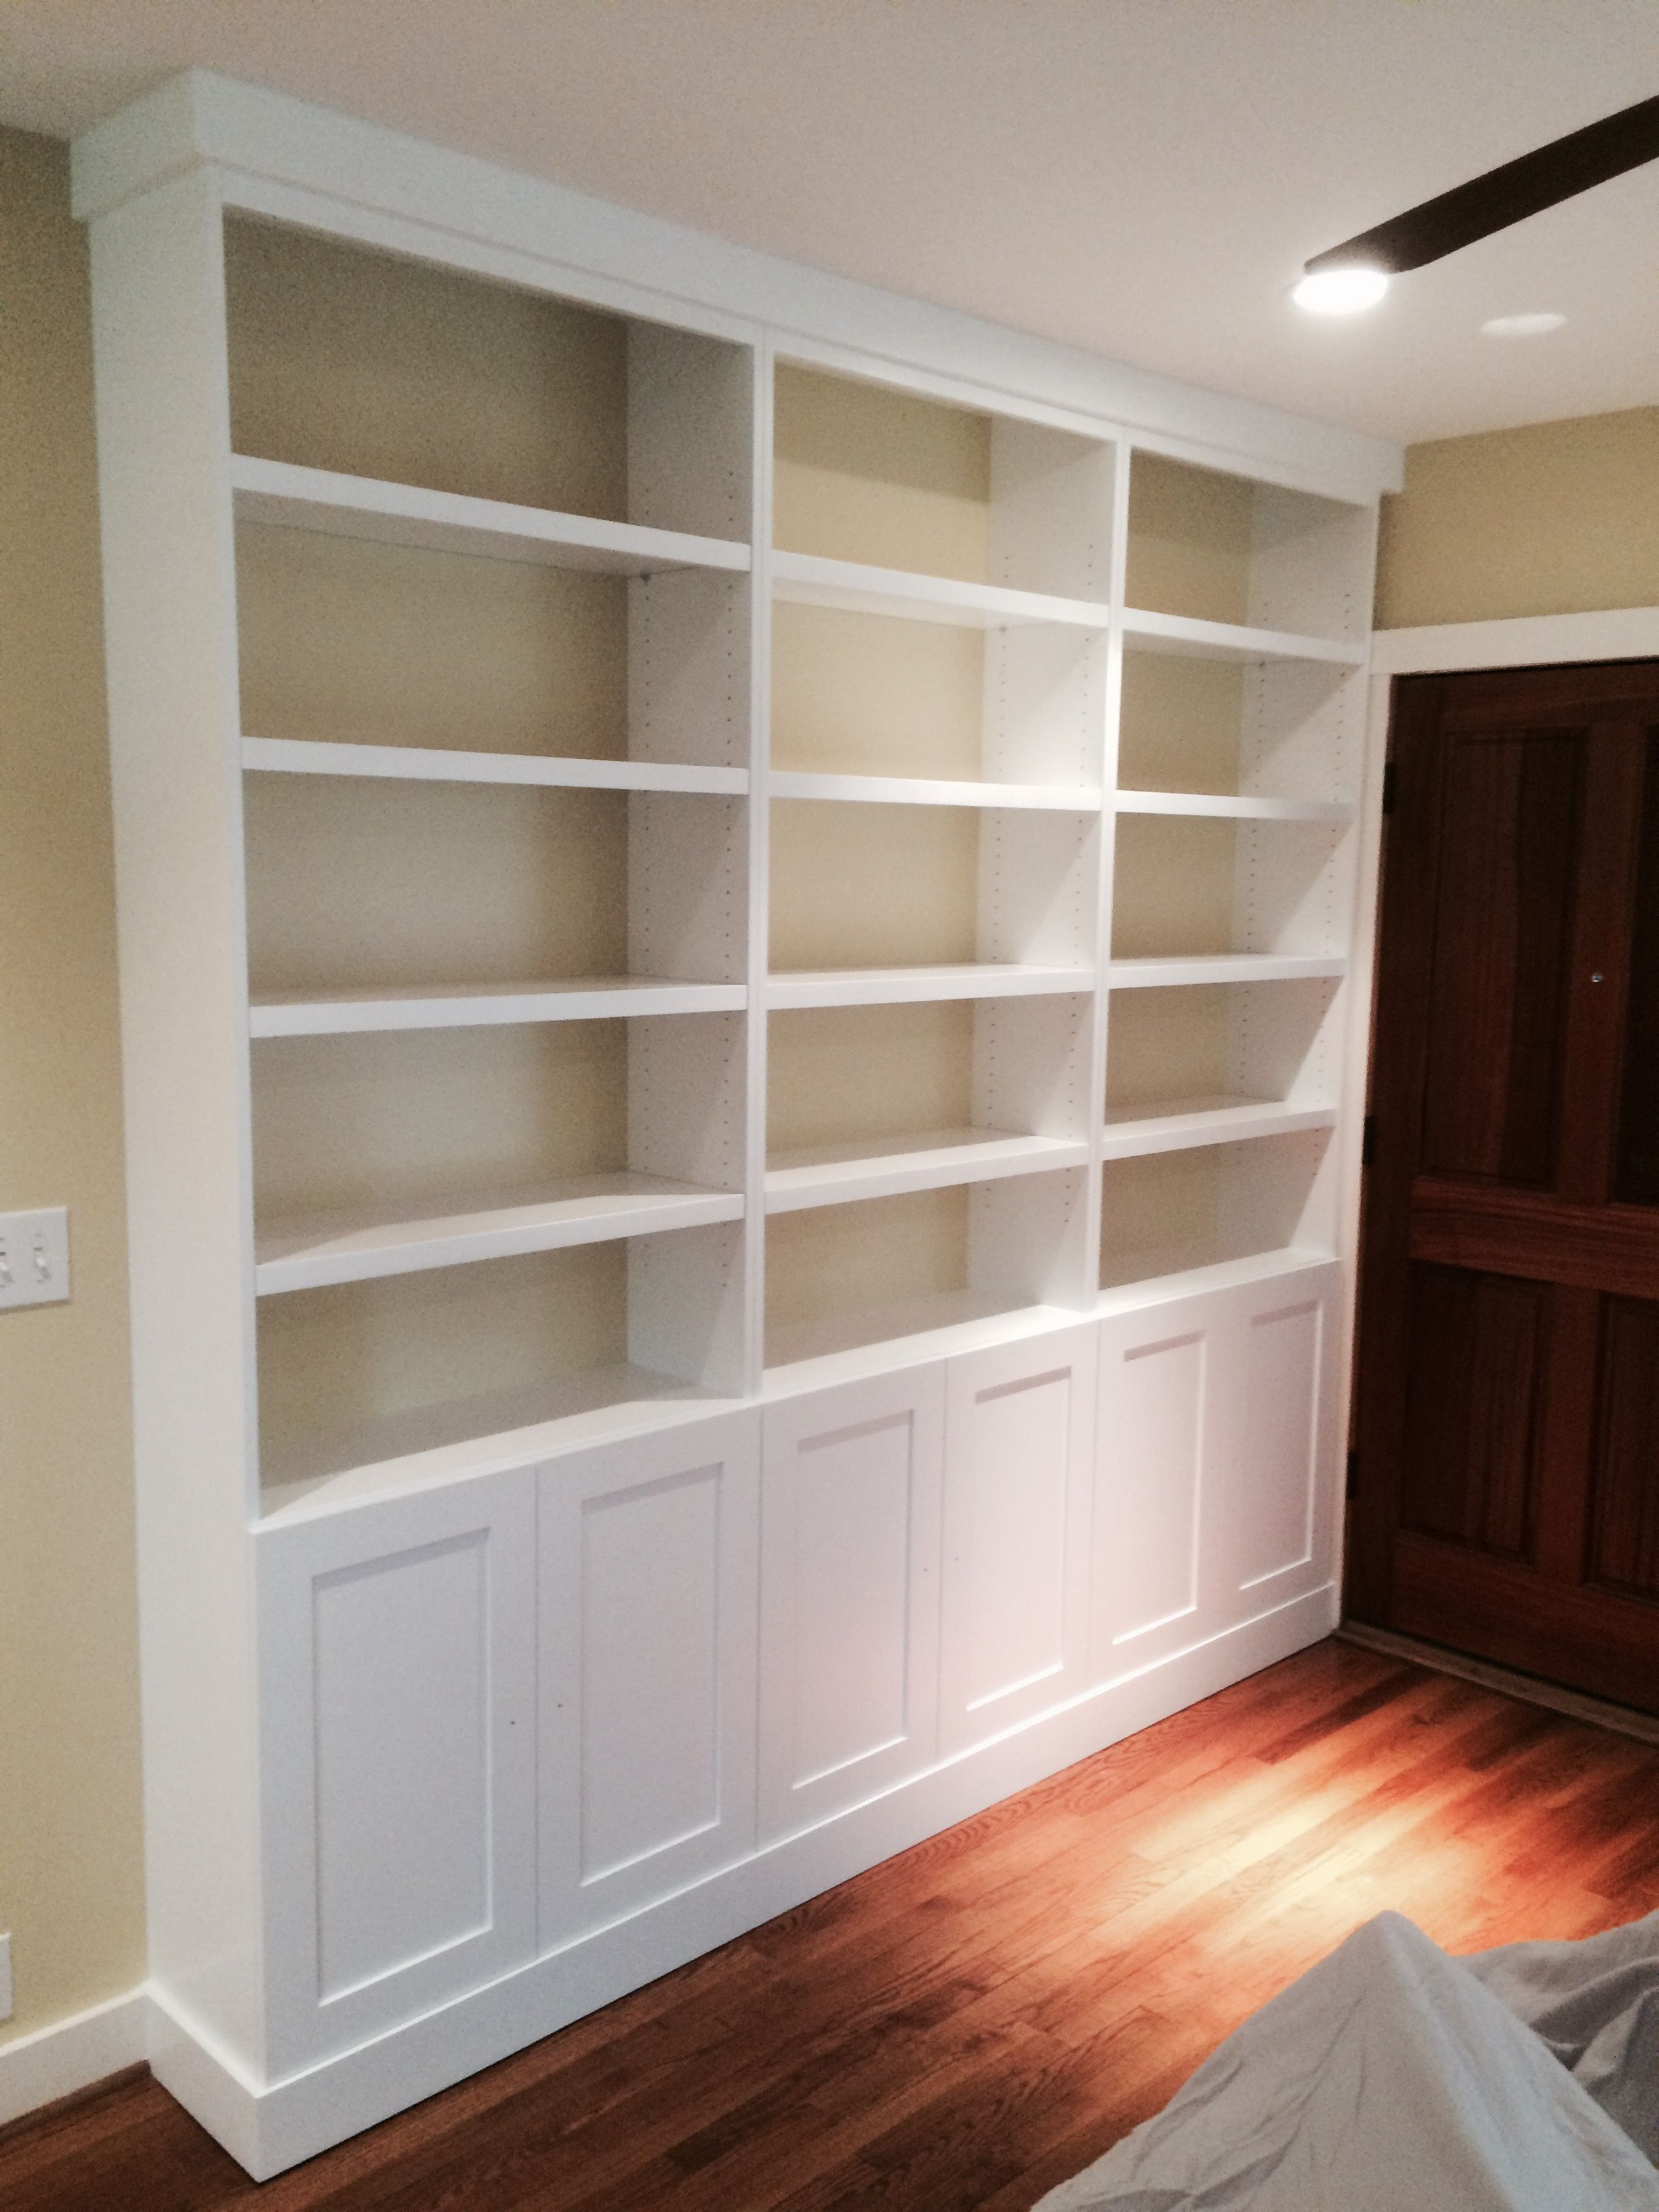 Woods Cabinets Llc Made This Custom Built In Shelving